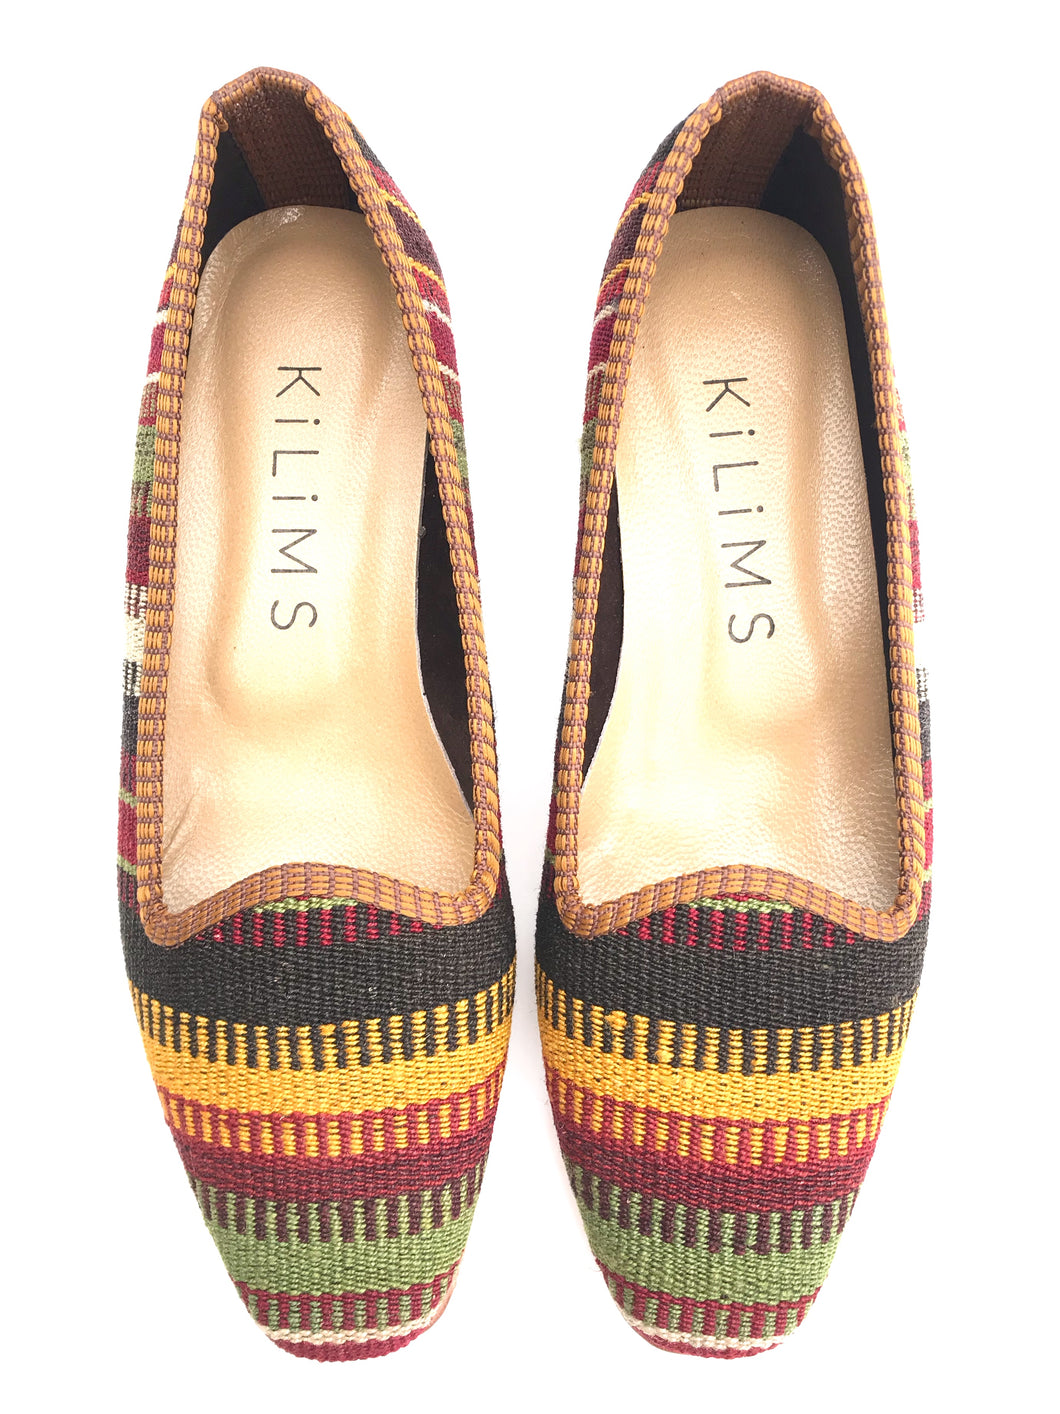 Women's Kilim Slippers size 37 (US size 7)